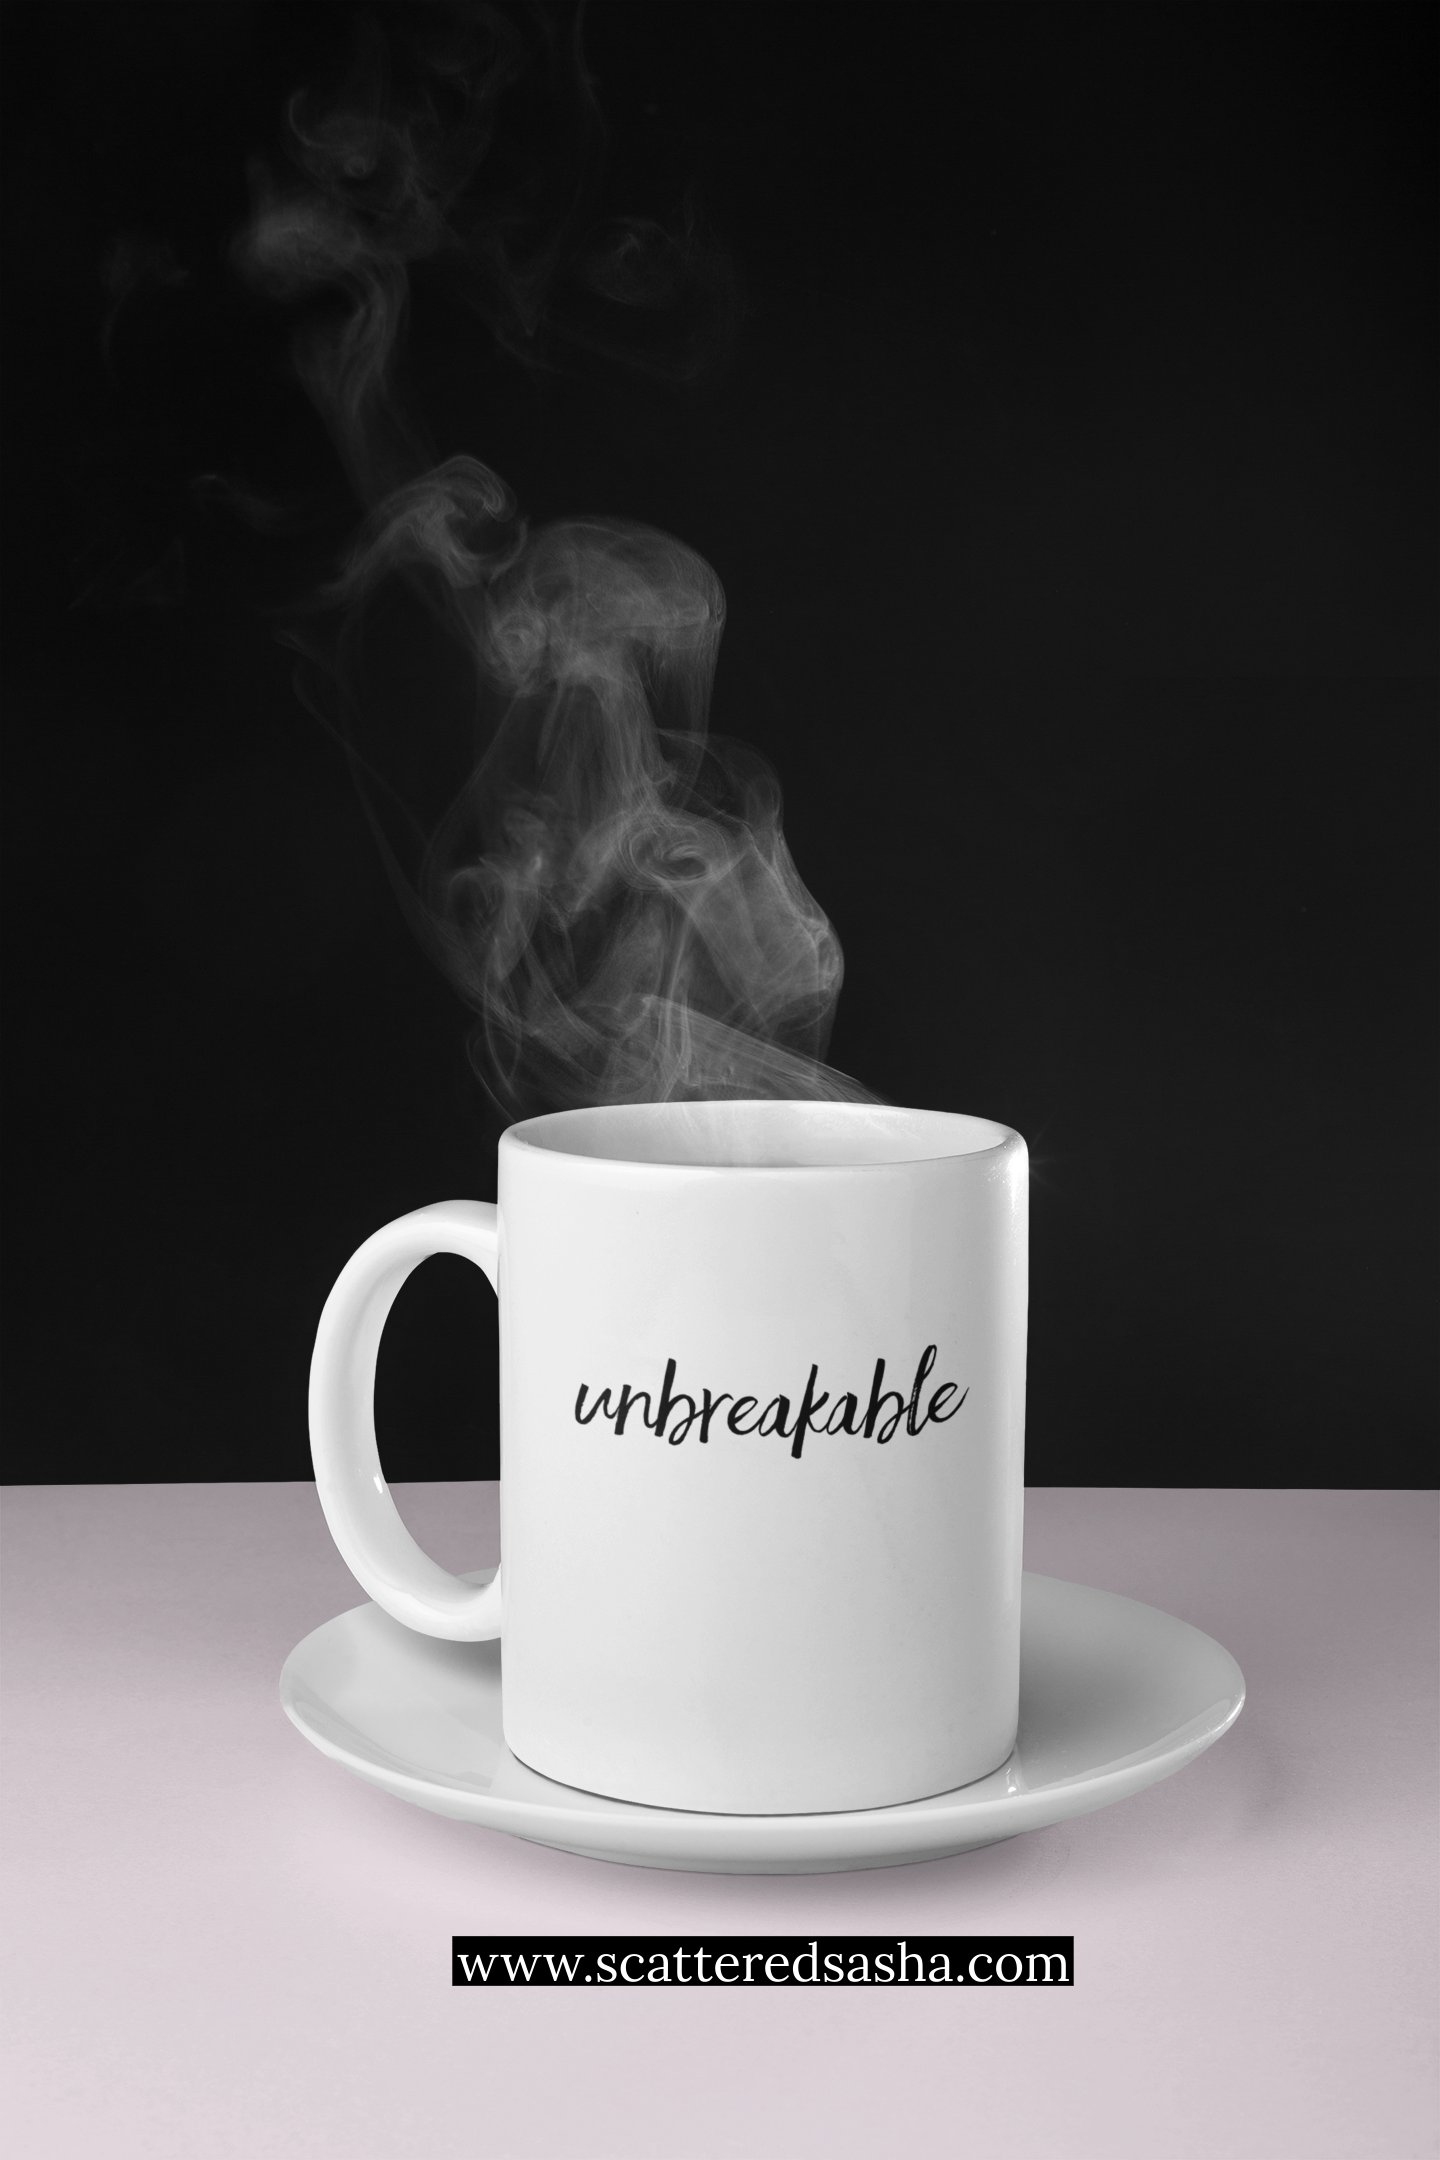 Promo - Unbreakable on cup